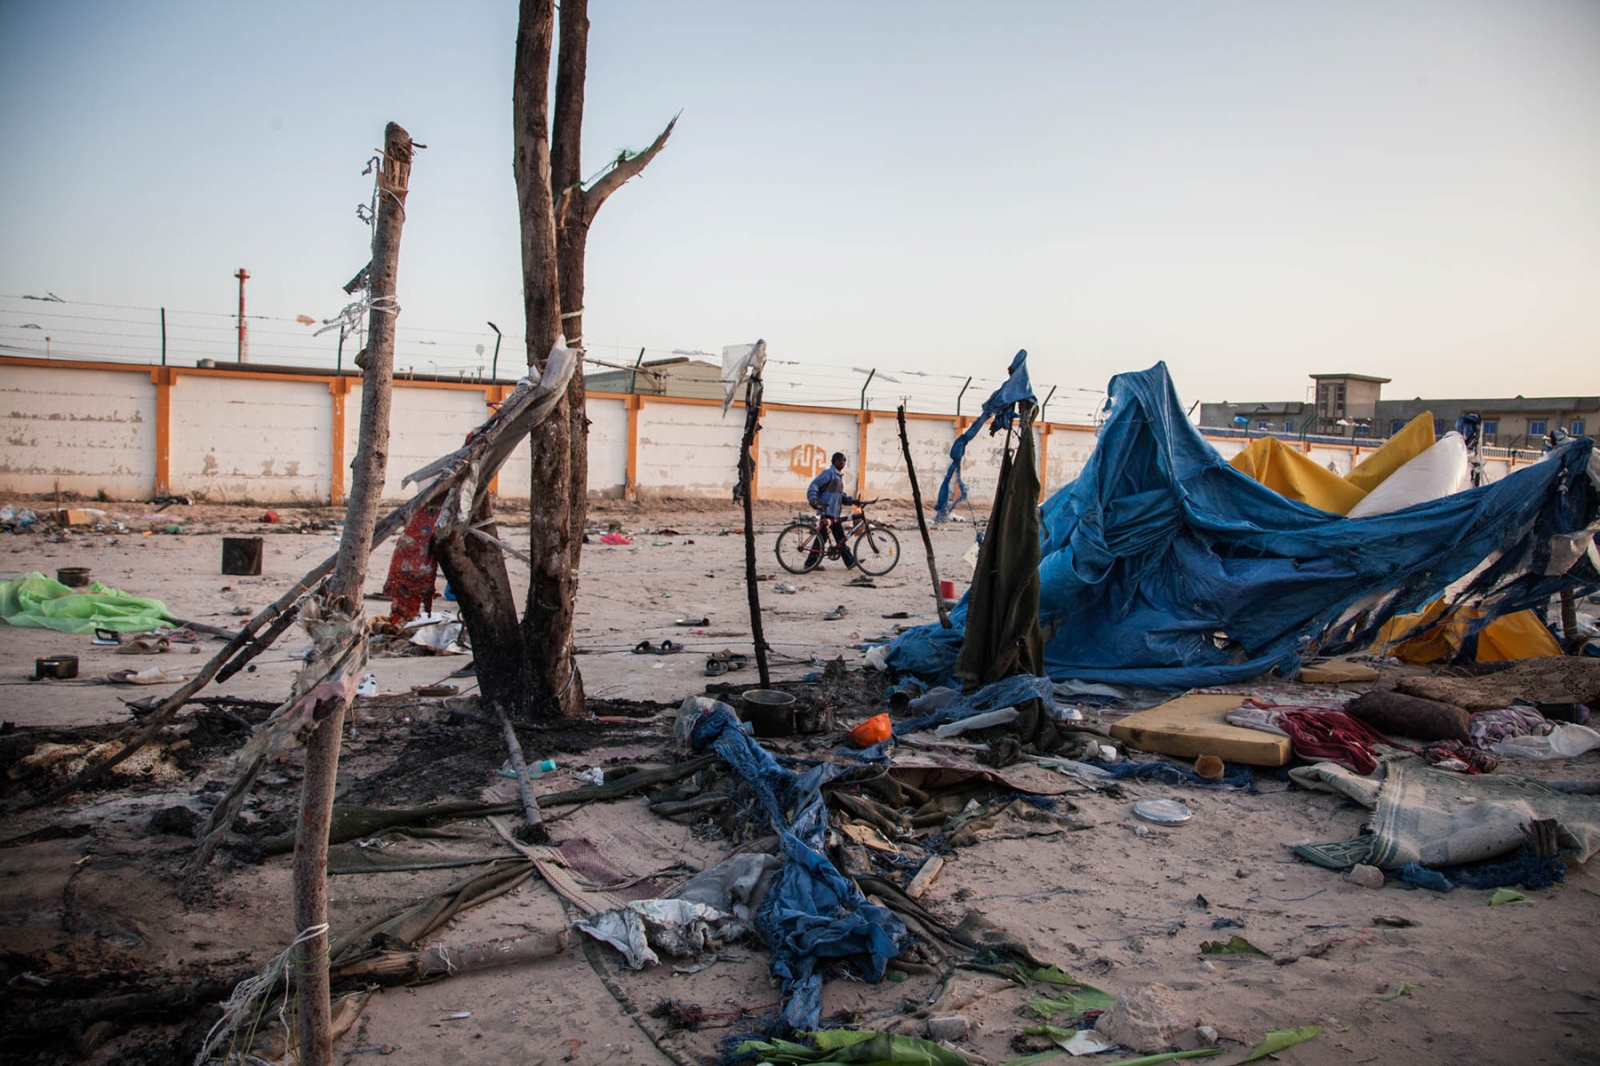 An African migrant worker gathers the few belongings he had and moves out of the destroyed section of a tent camp near the port of the besieged city of Misurata on April 26, 2011, after a shell from pro-Gaddafi forces landed in the camp, killing one migrant and wounding several others.